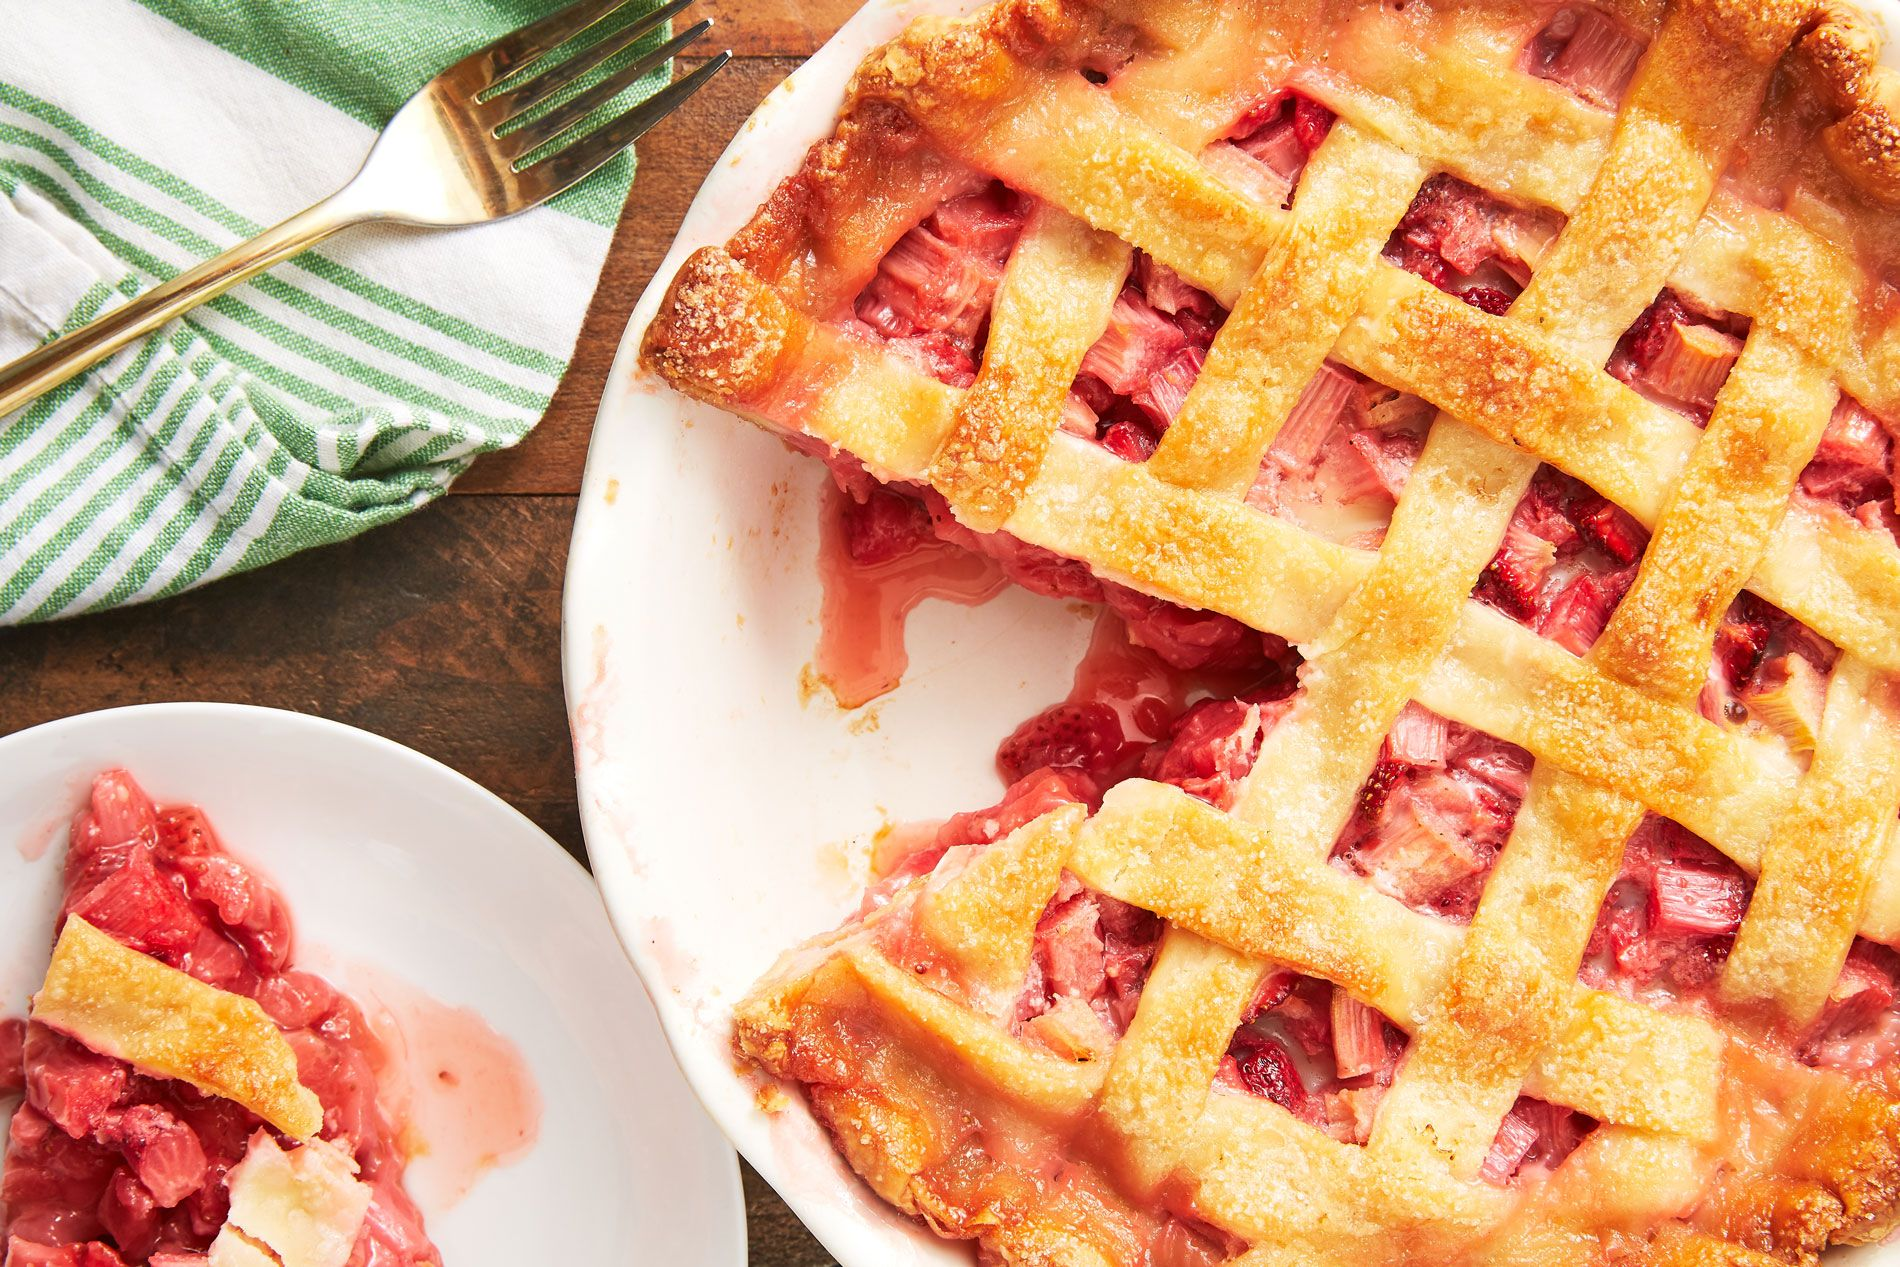 Best Strawberry Rhubarb Pie Recipe How To Make Strawberry Rhubarb Pie